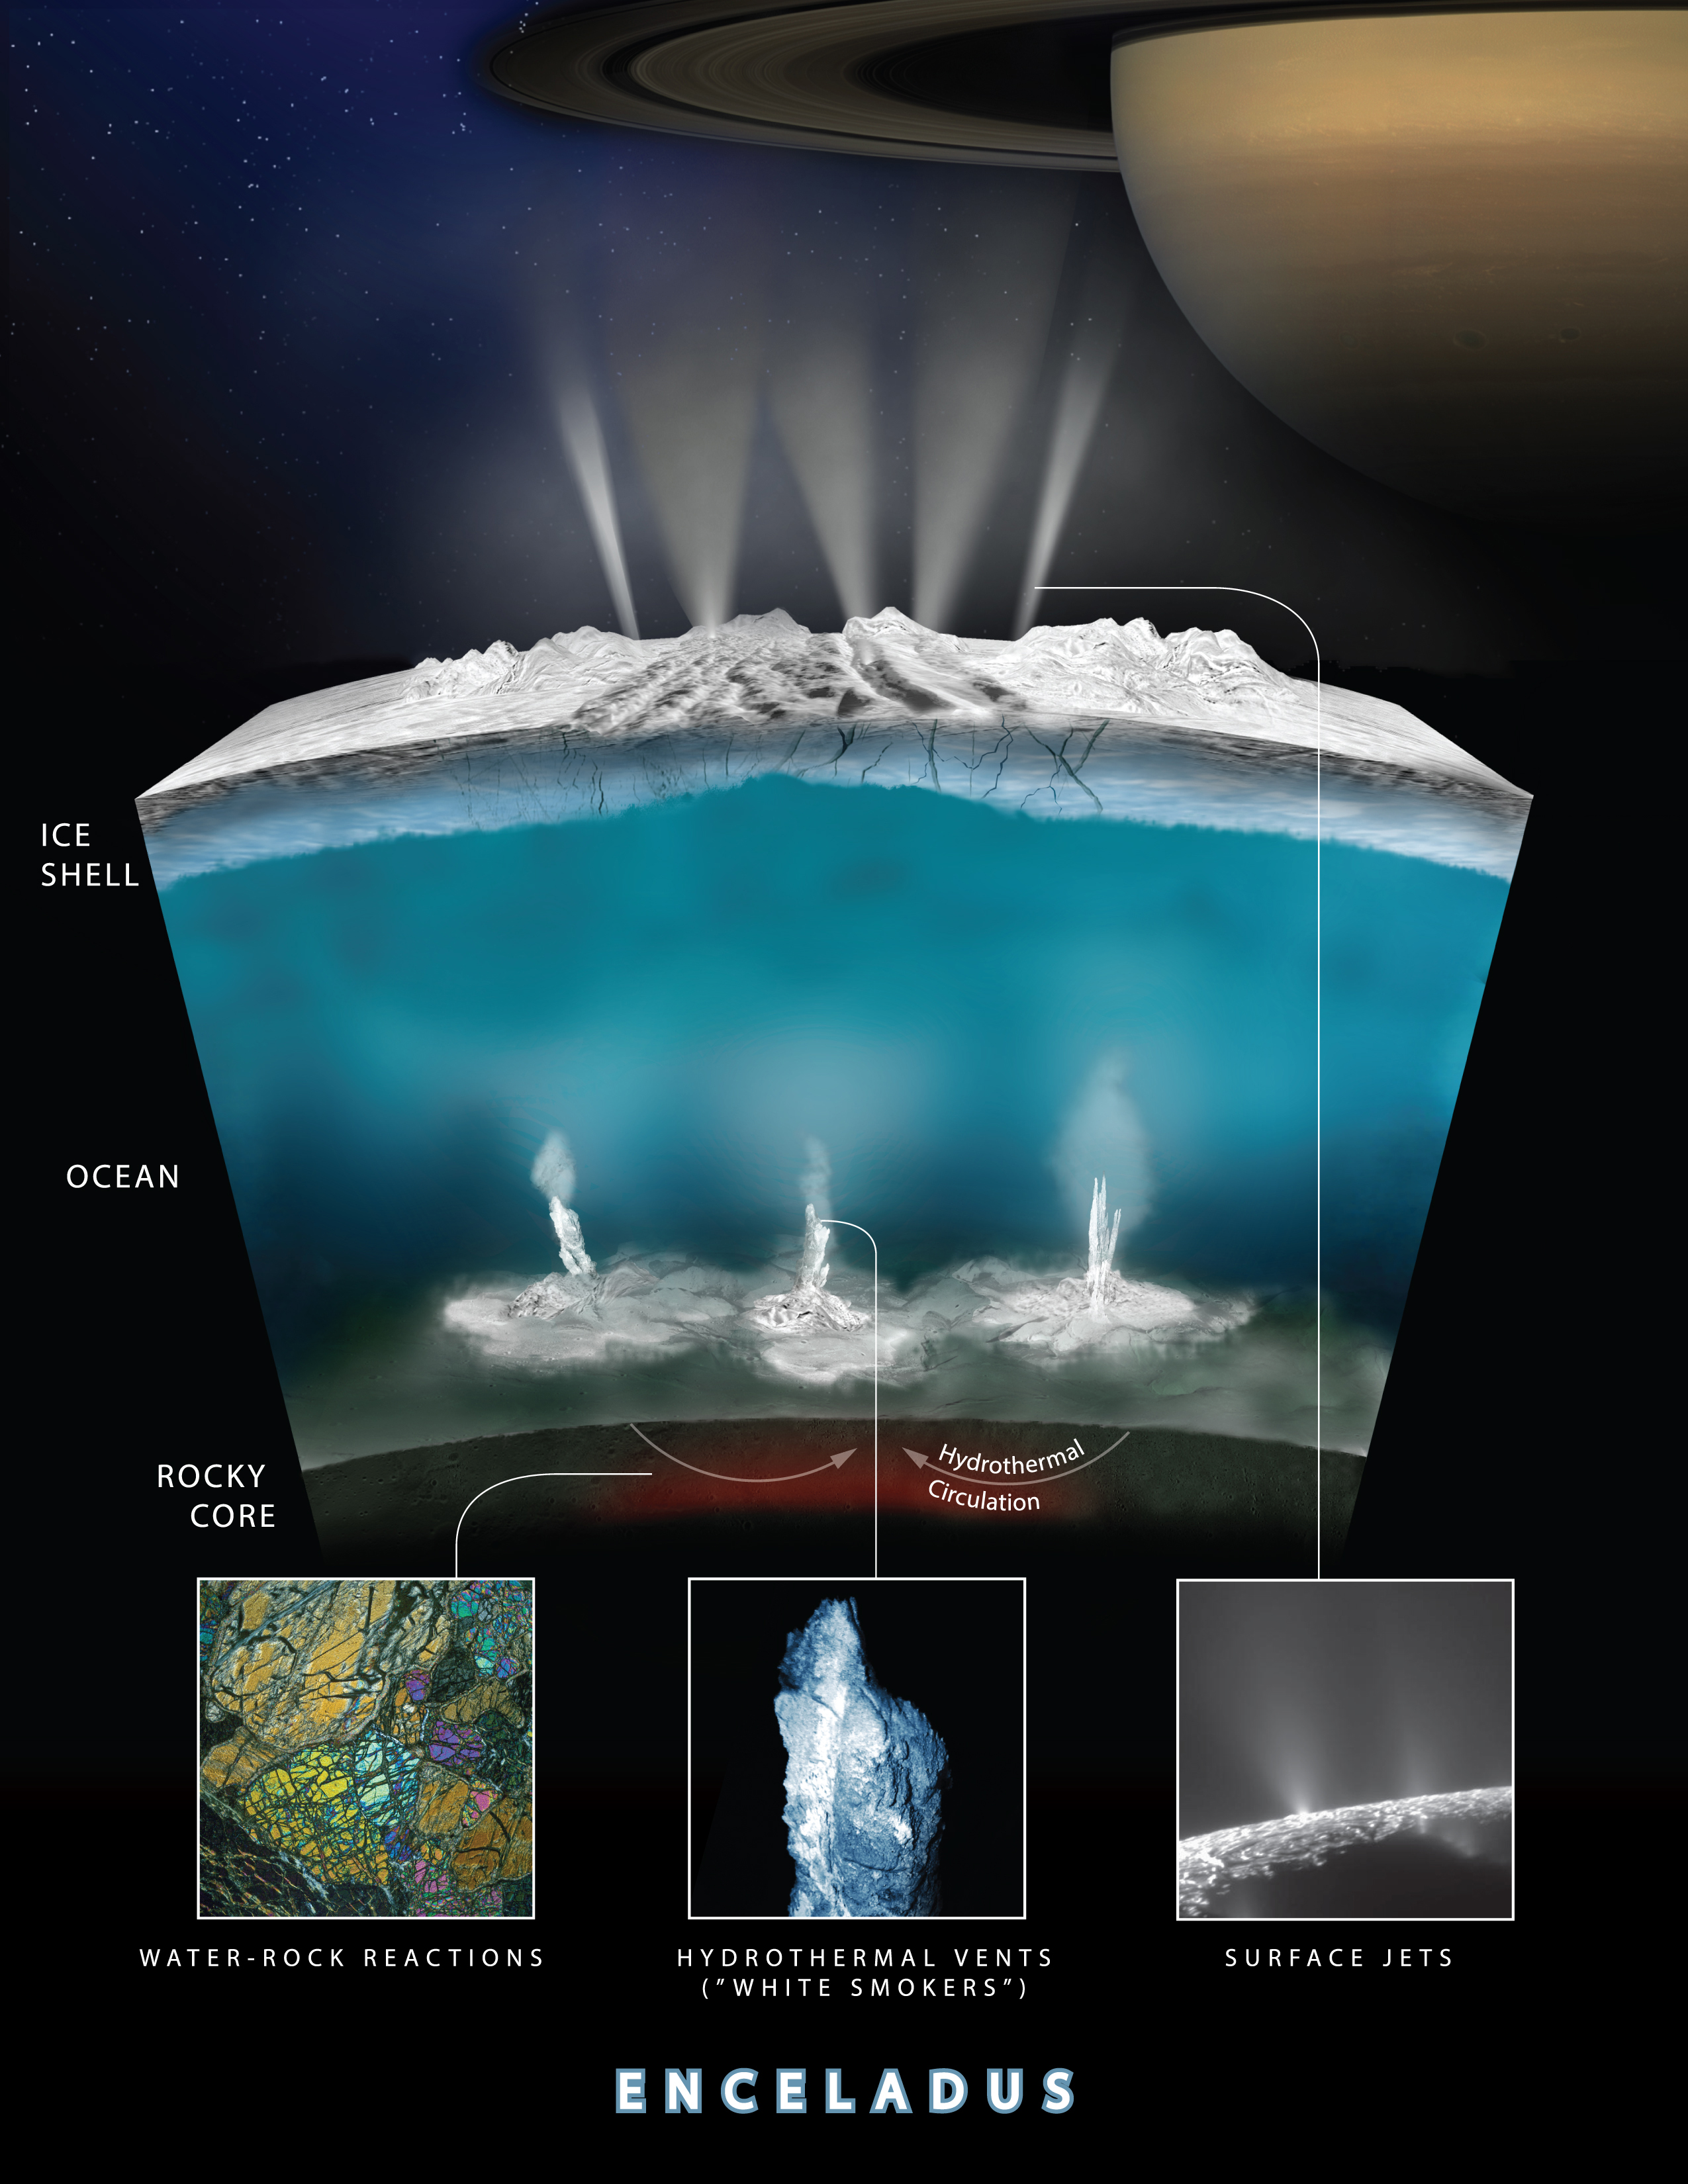 Illustrated graphic showing what an under ice ocean on Enceladus might look like.